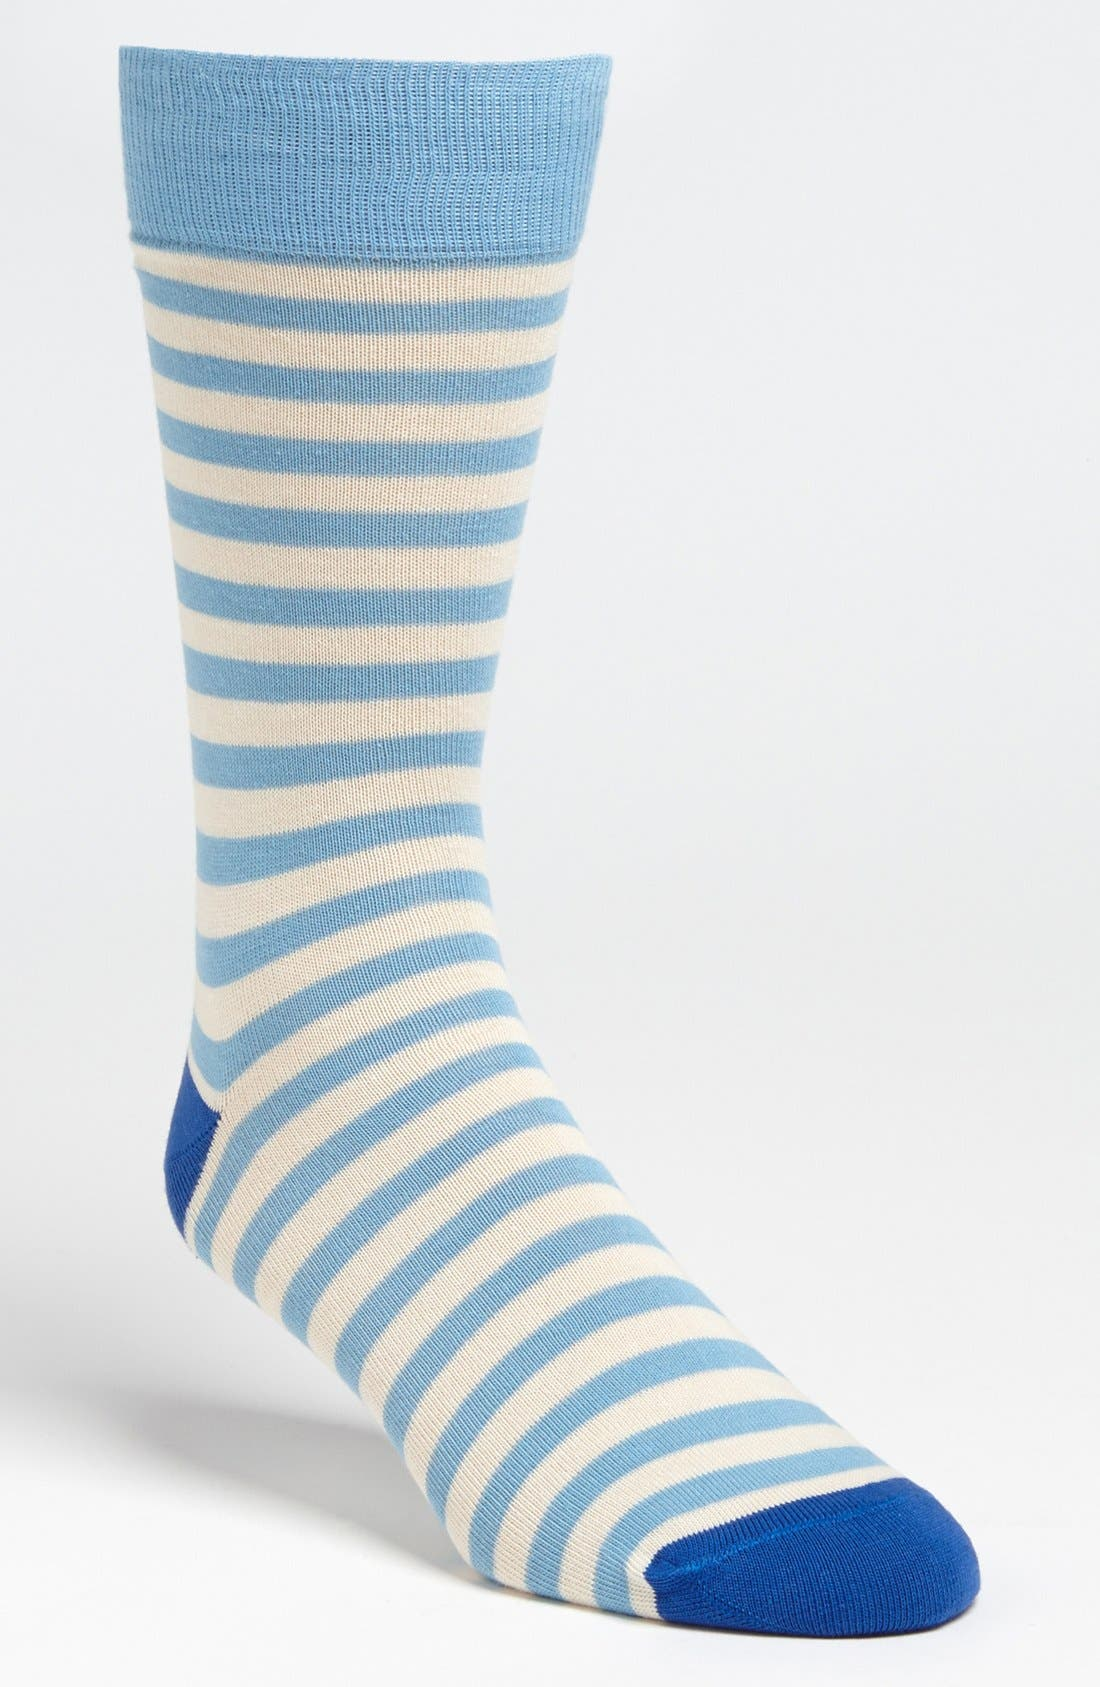 Alternate Image 1 Selected - Lorenzo Uomo Stripe Socks (3 for $27)